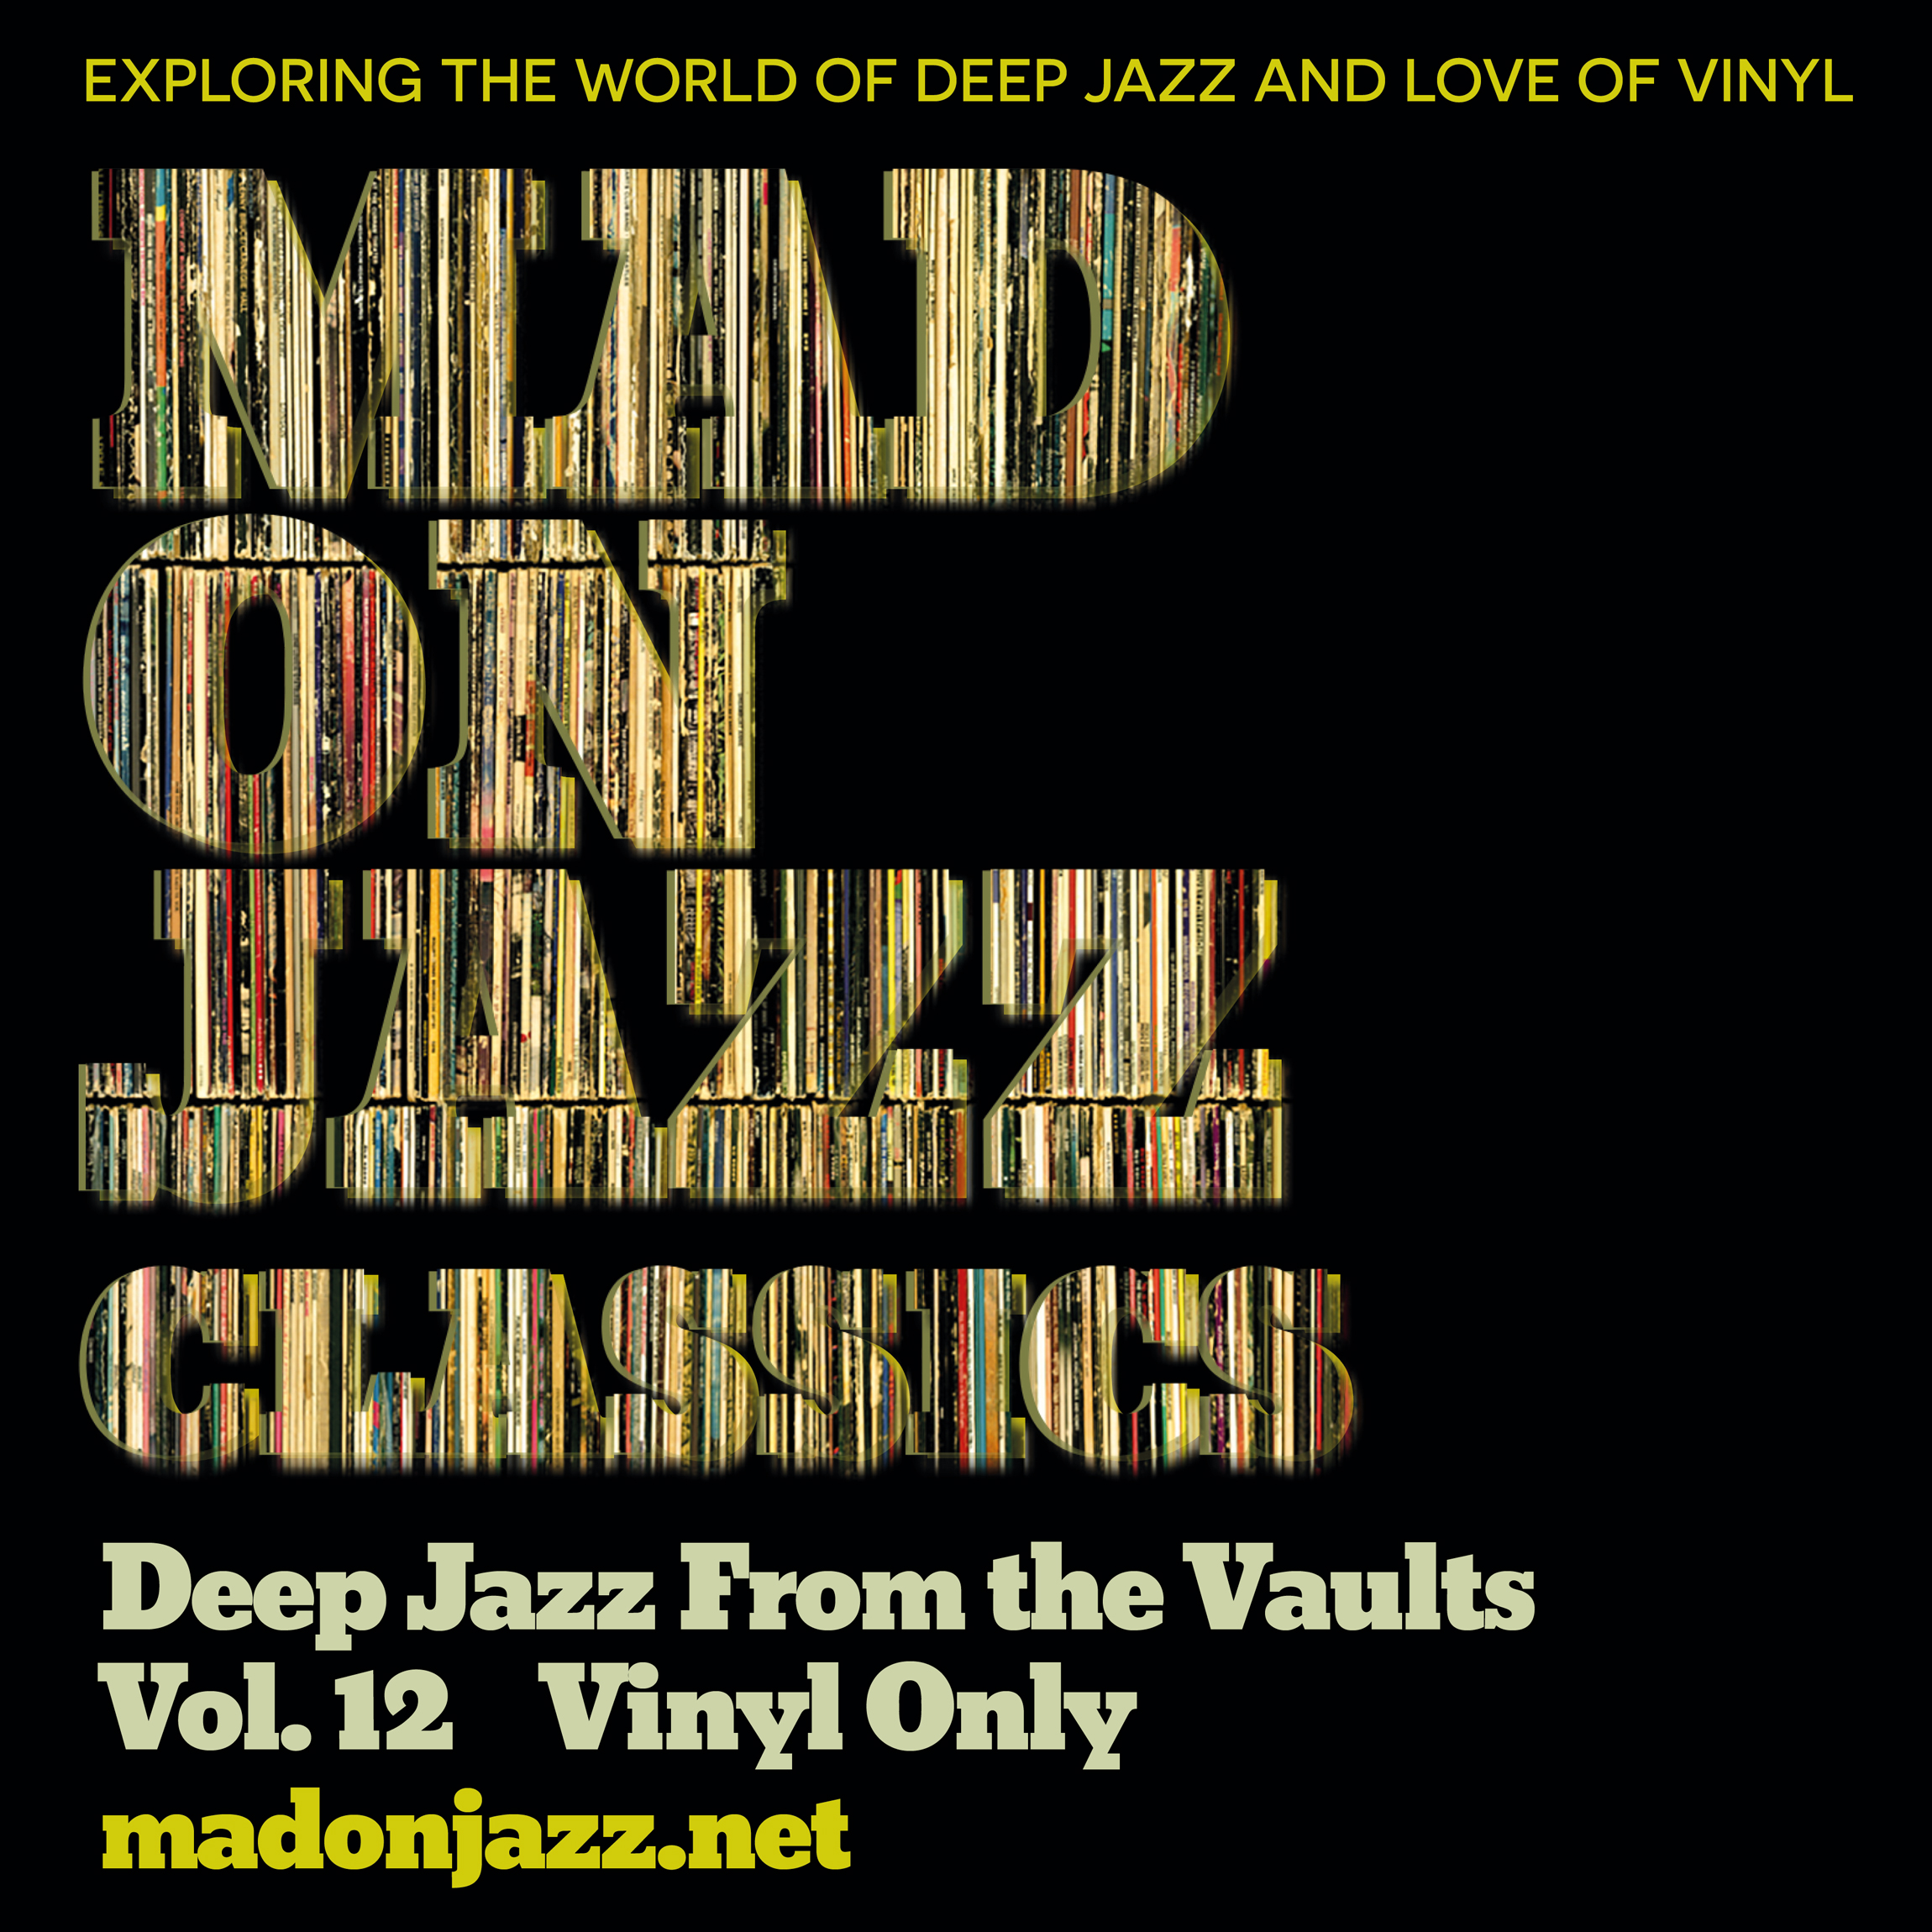 MADONJAZZ CLASSICS: Deep Jazz From the Vaults vol 12 - Vinyl only